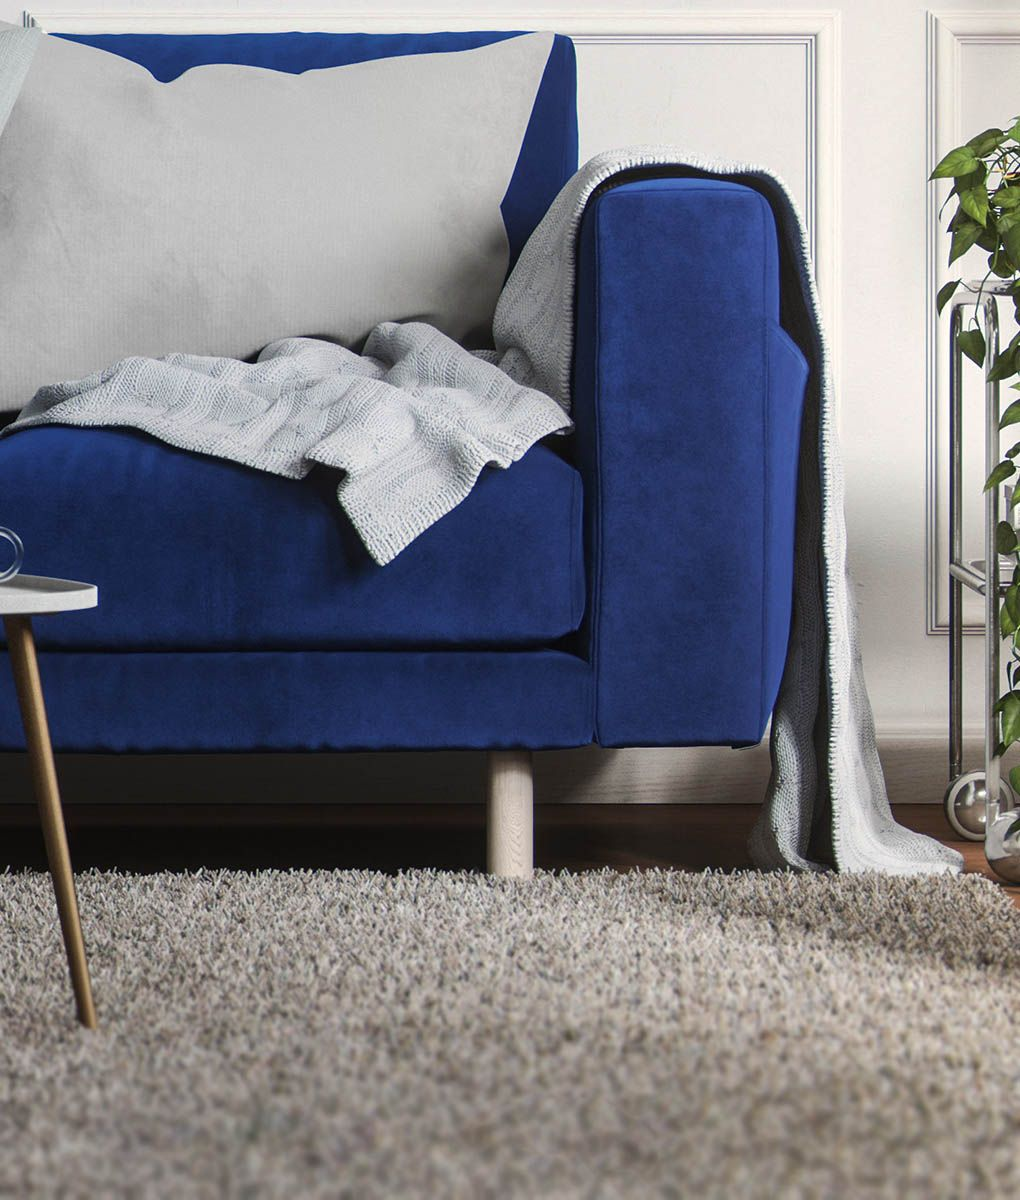 Outstanding Ikea Norsborg 3 Seater Sofa Covers Rouge Indigo Velvet Machost Co Dining Chair Design Ideas Machostcouk